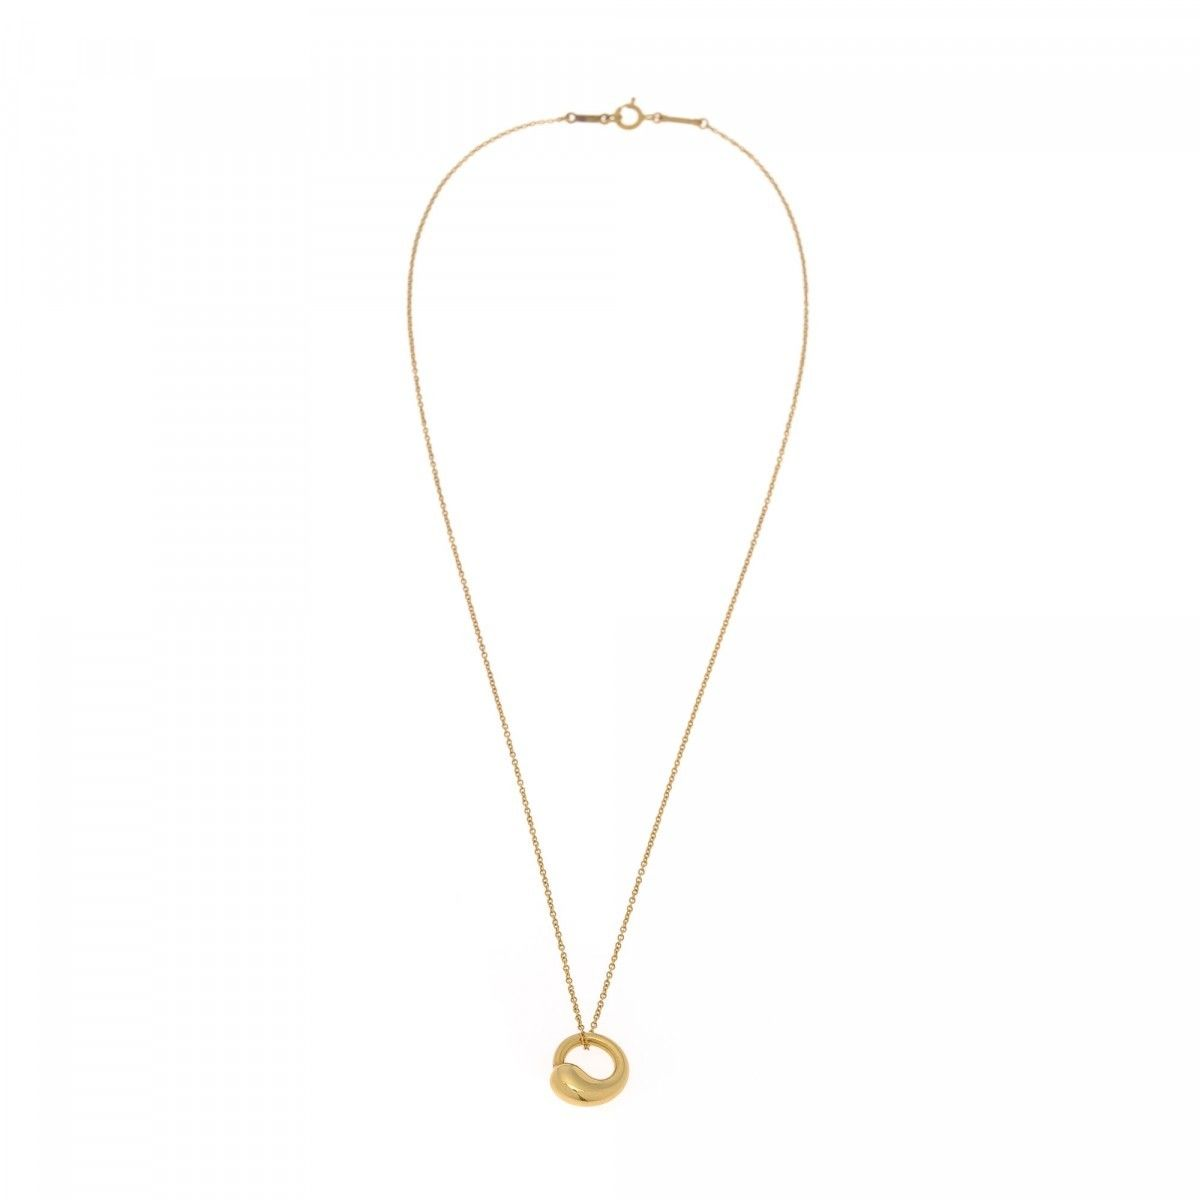 Tiffany elsa peretti eternal circle pendant necklace 40cm 18k gold elsa peretti eternal circle pendant necklace 40cm mozeypictures Choice Image